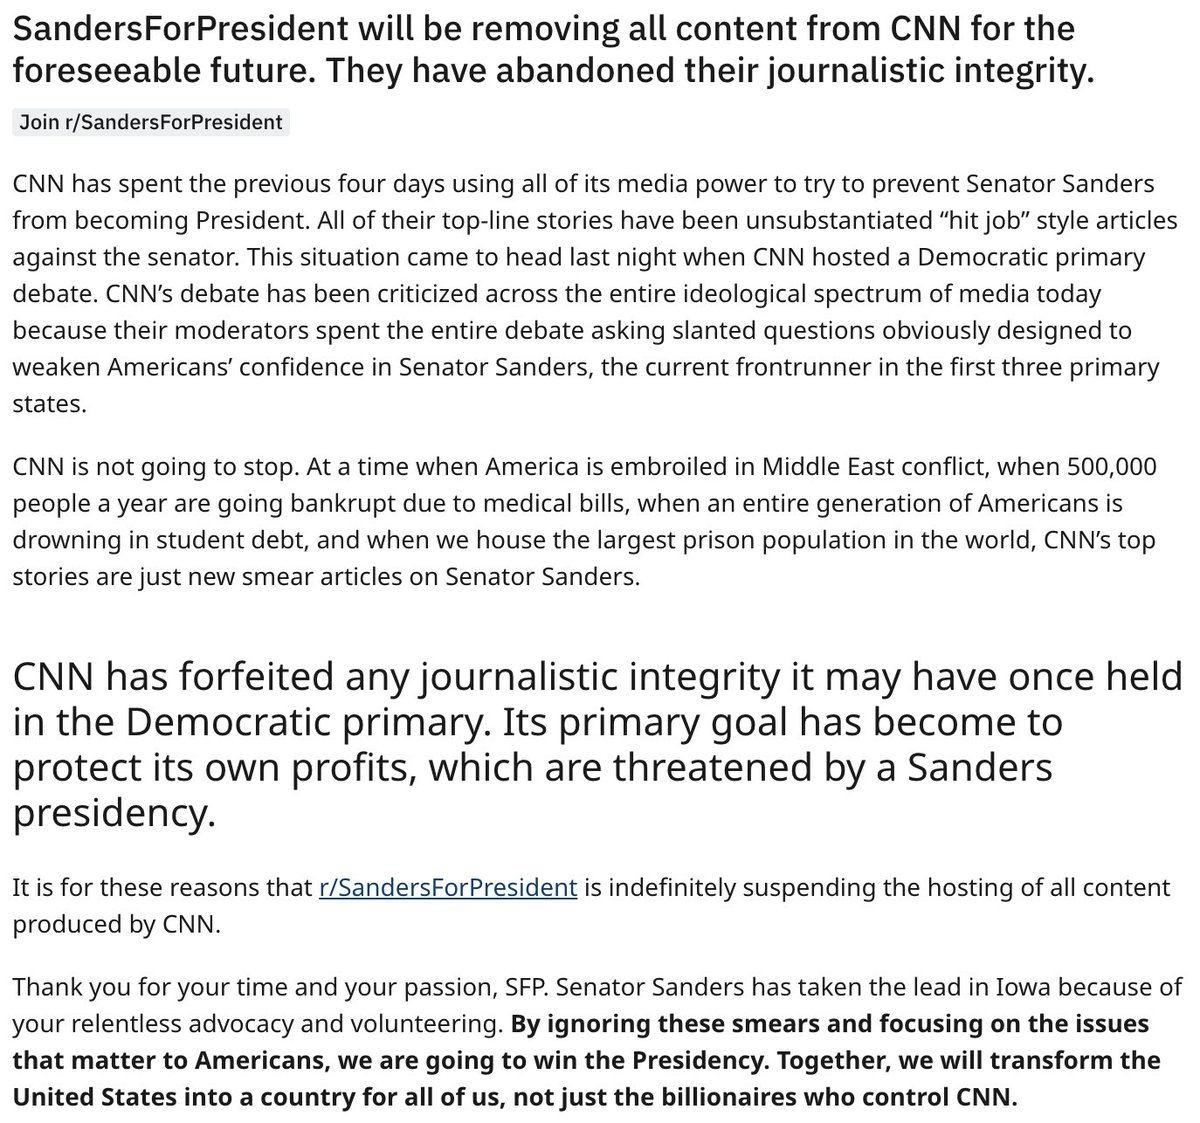 """The popular pro-Bernie Sanders subreddit r/SandersForPresident says it is """"removing all content from CNN for the foreseeable future"""" because """"they have abandoned their journalistic integrity"""": CNN's debate """"has been criticized across the entire ideological spectrum of media."""""""